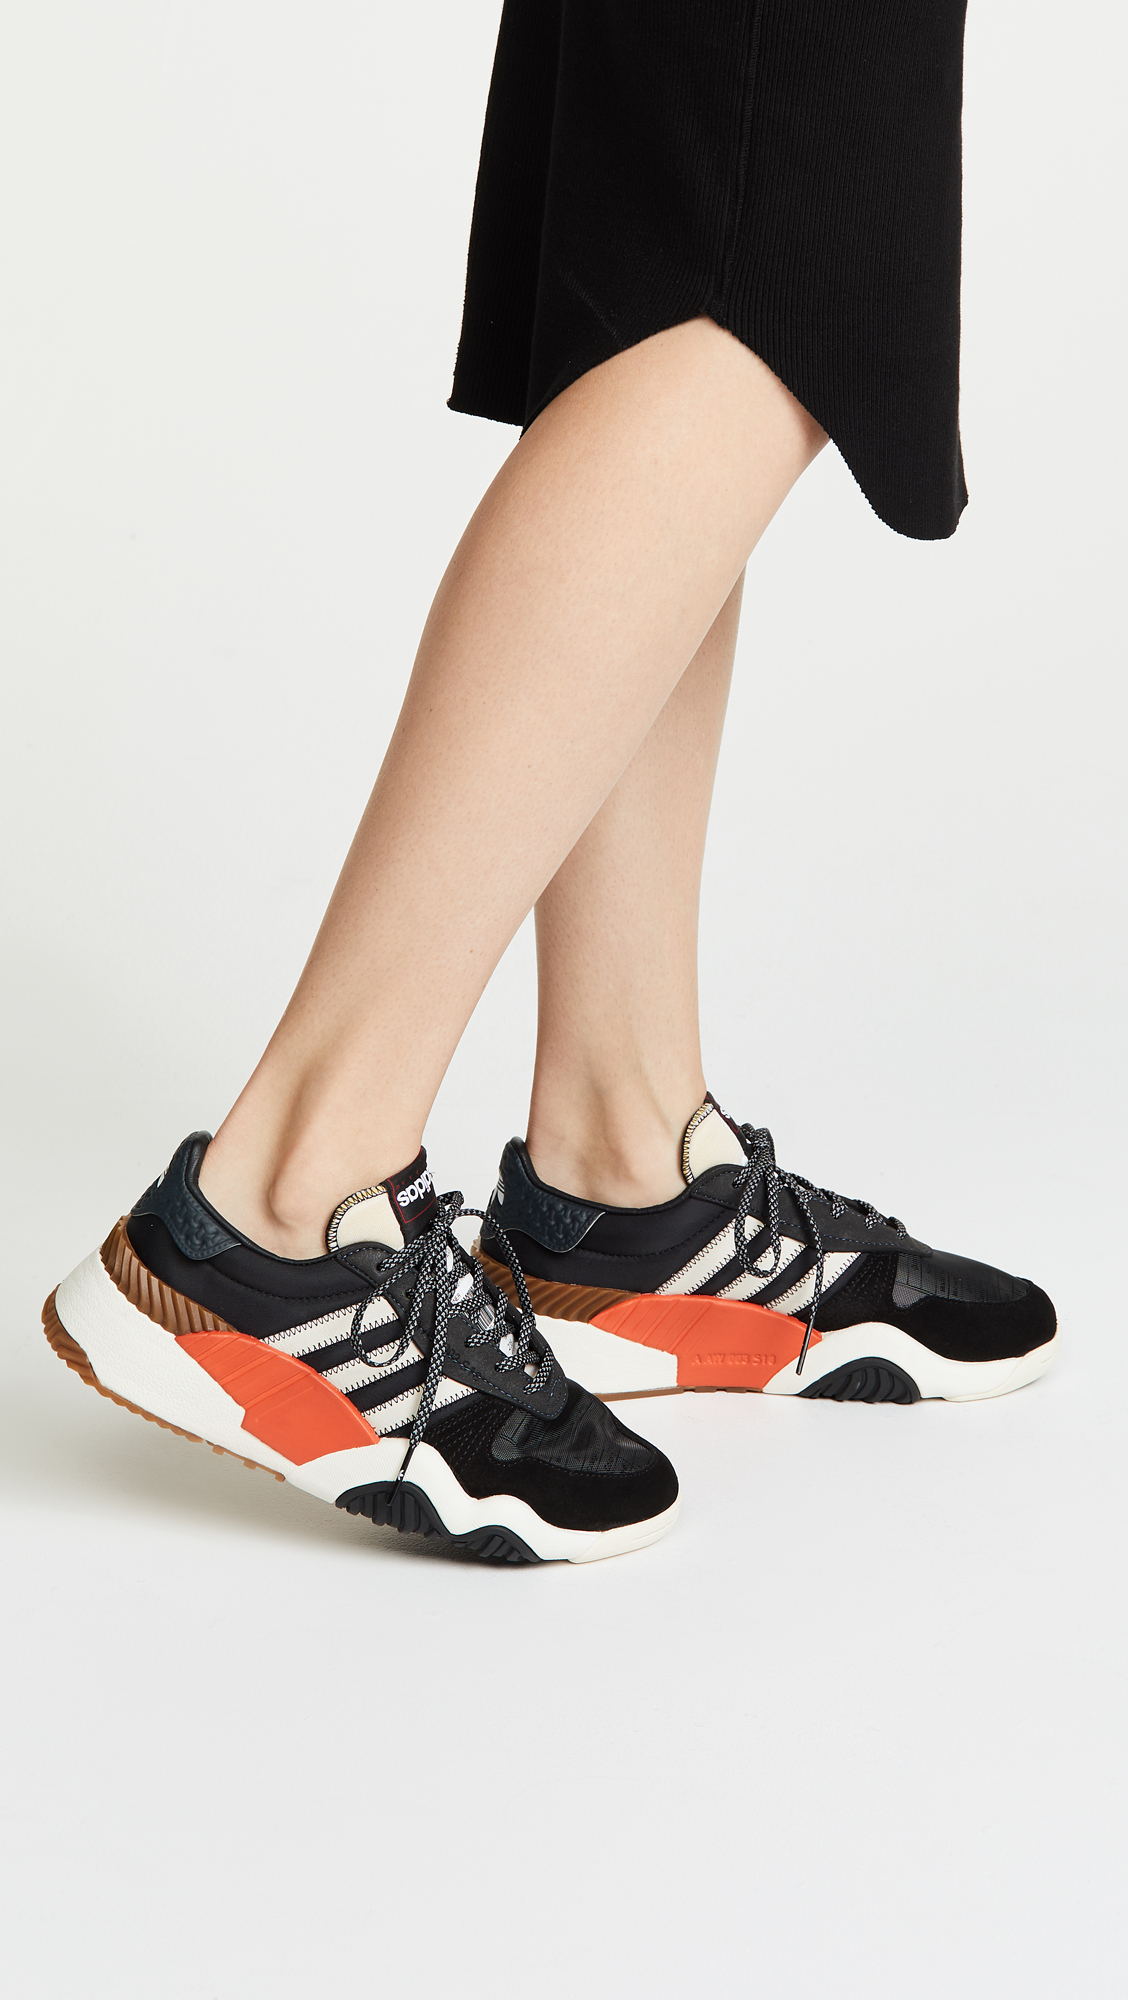 067f508adf8 adidas Originals by Alexander Wang AW Turnout Trainers